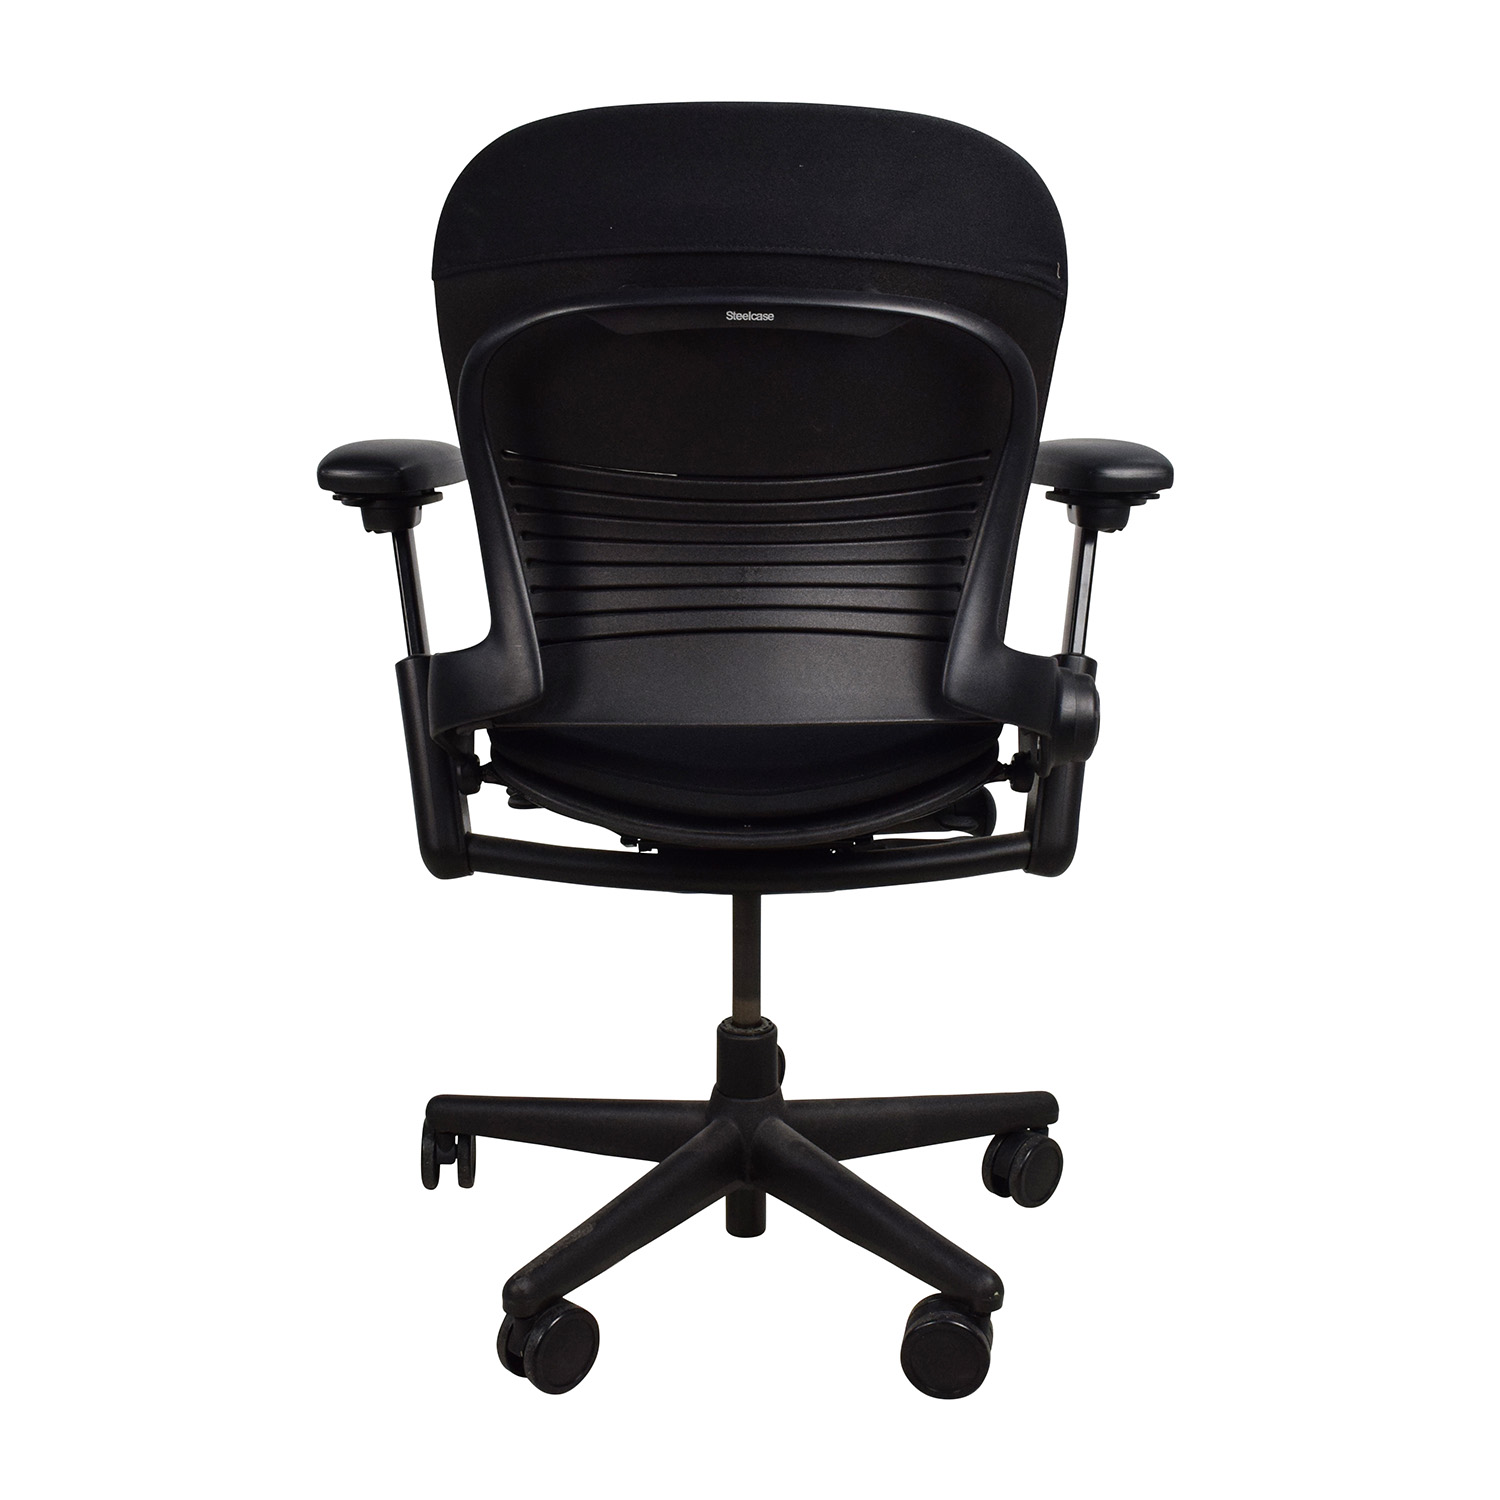 Home Office Desk Chair 71 Off Adjustable Black Office Desk Chair Chairs